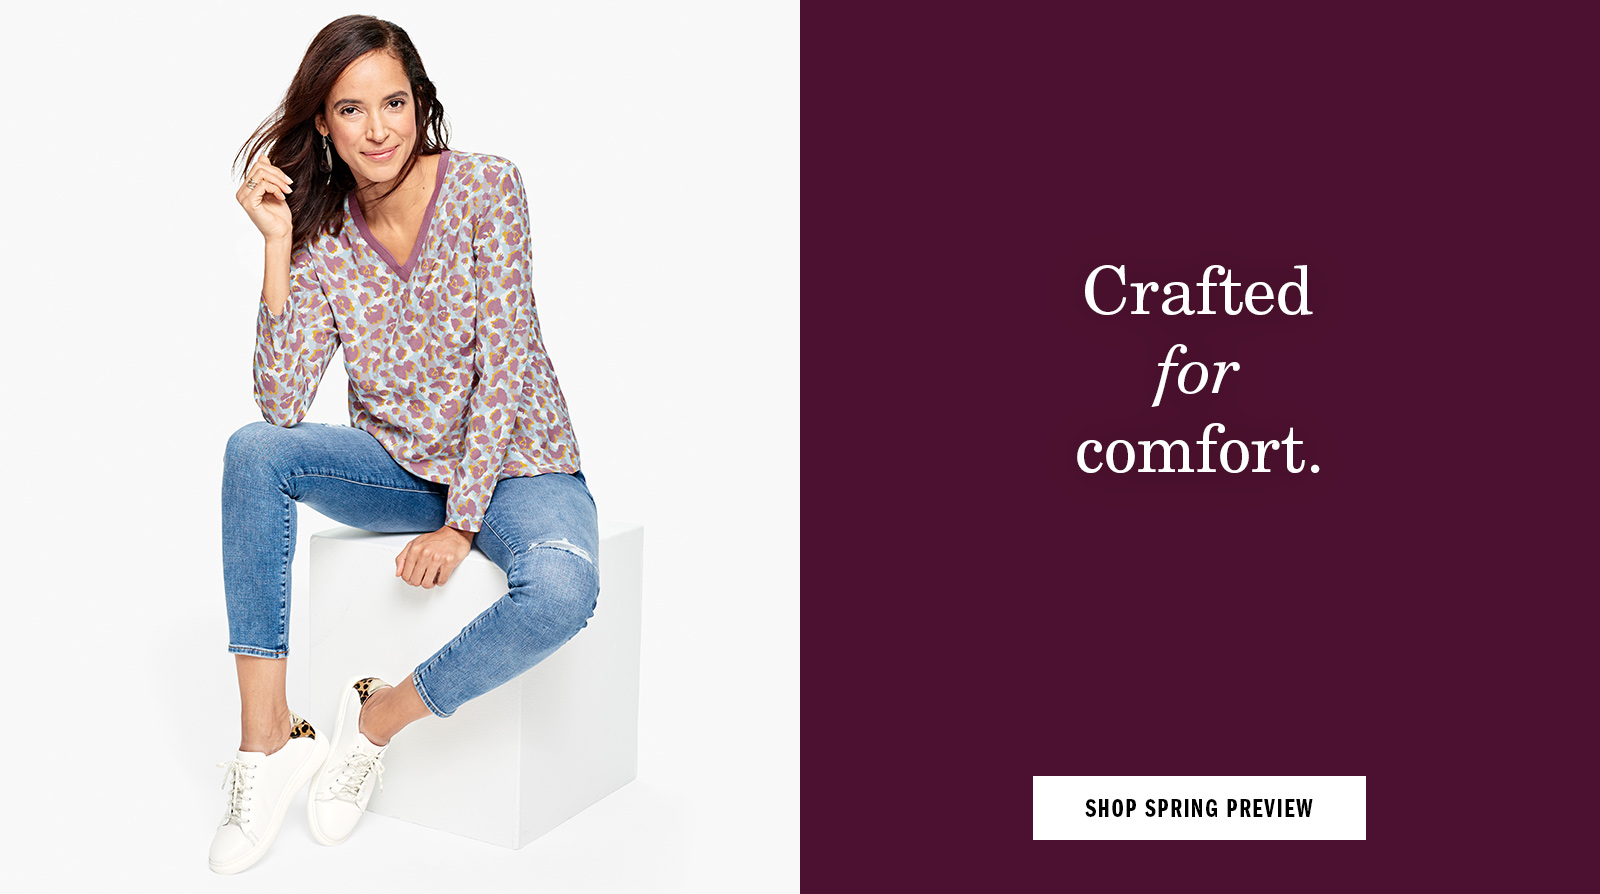 Crafted for comfort. - Shop Women's Shoes and Apparel